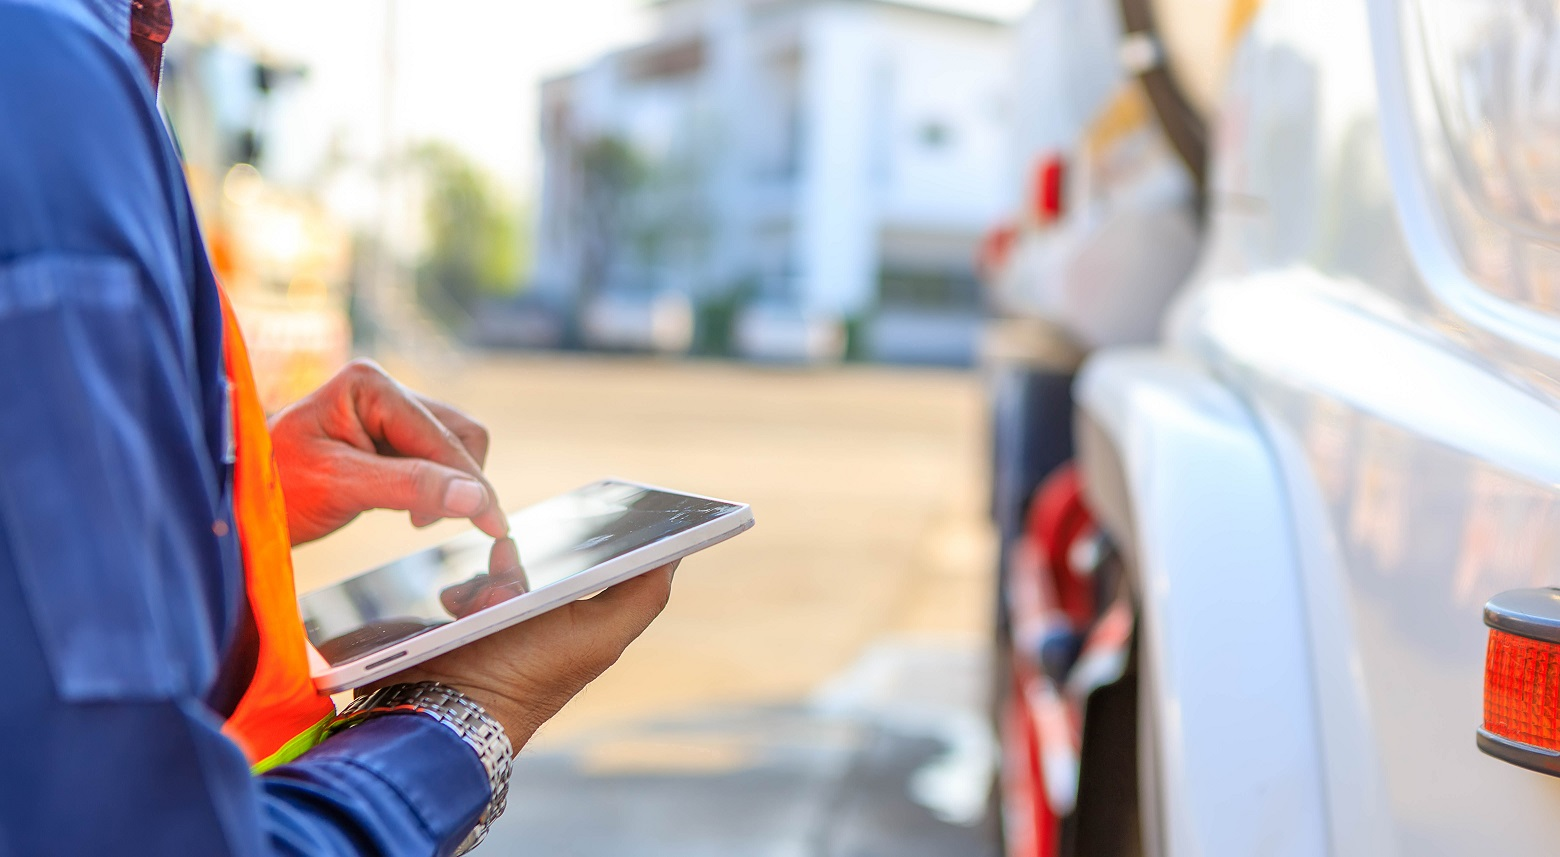 Vehicle Pre-trip and Post-trip Inspections